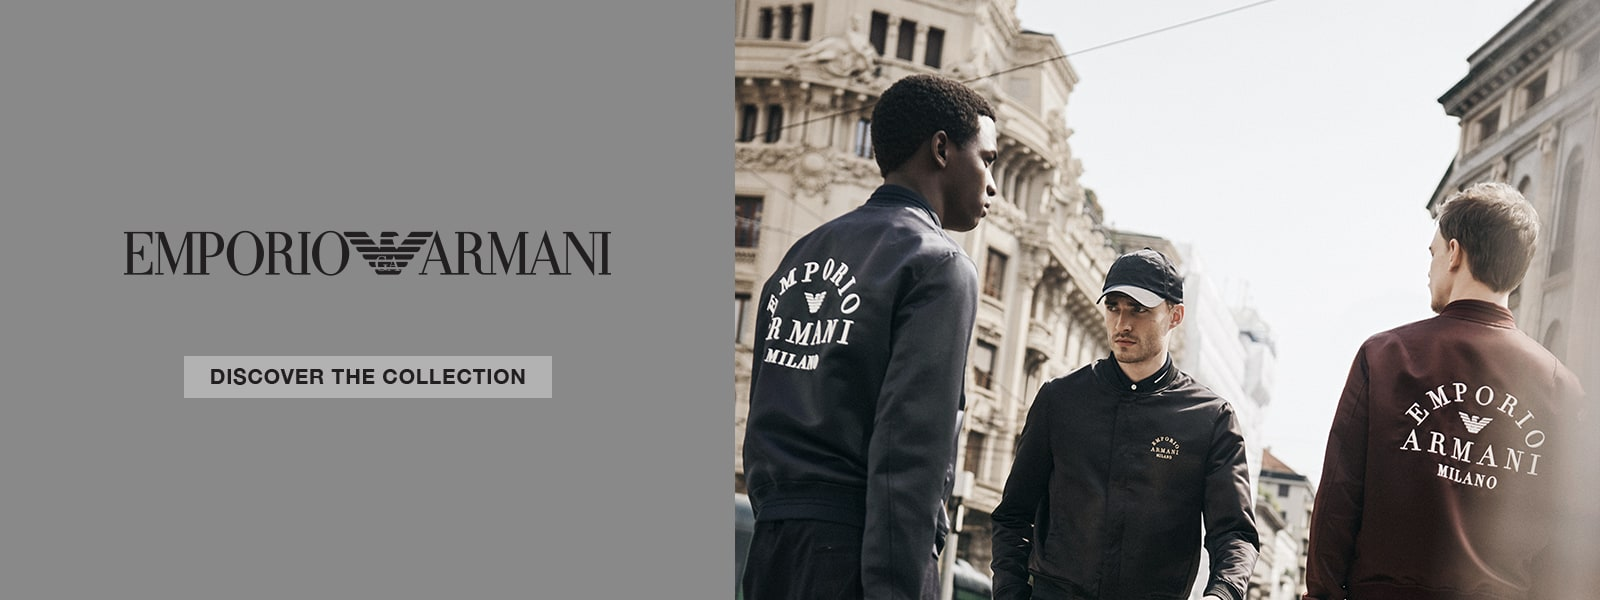 Emporio Armani Autumn Winter 19 collection